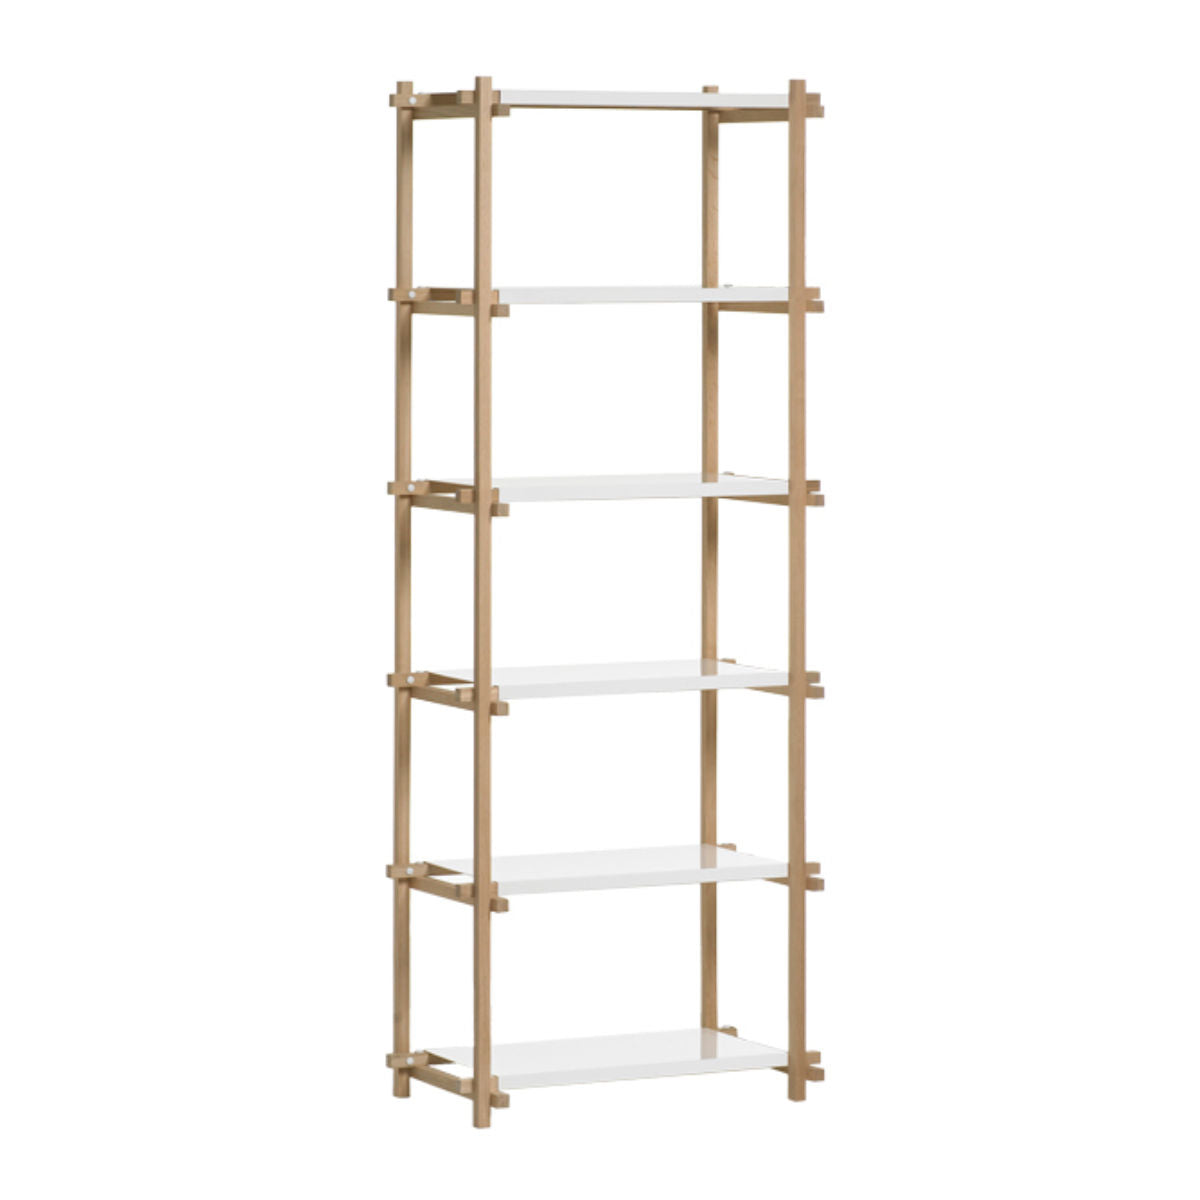 Hay Woody column shelf, high